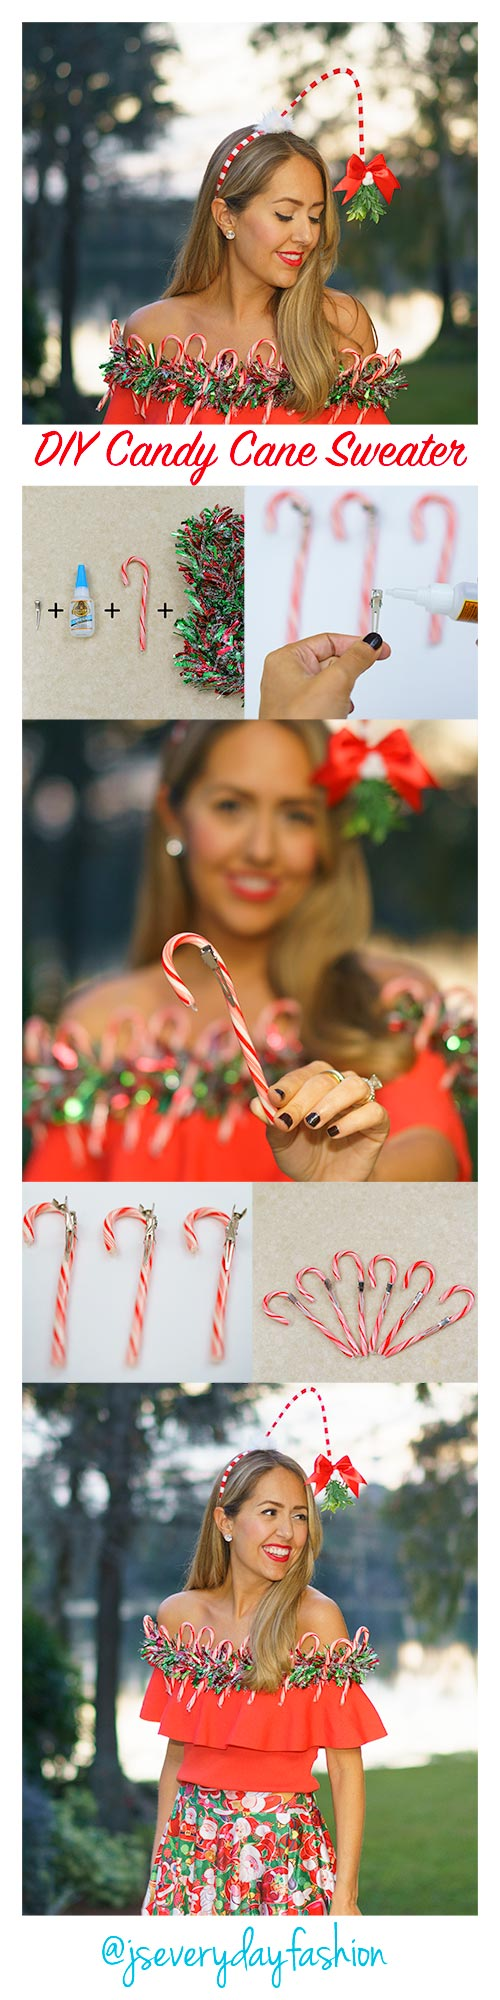 DIY Candy Cane Ugly Christmas Sweater